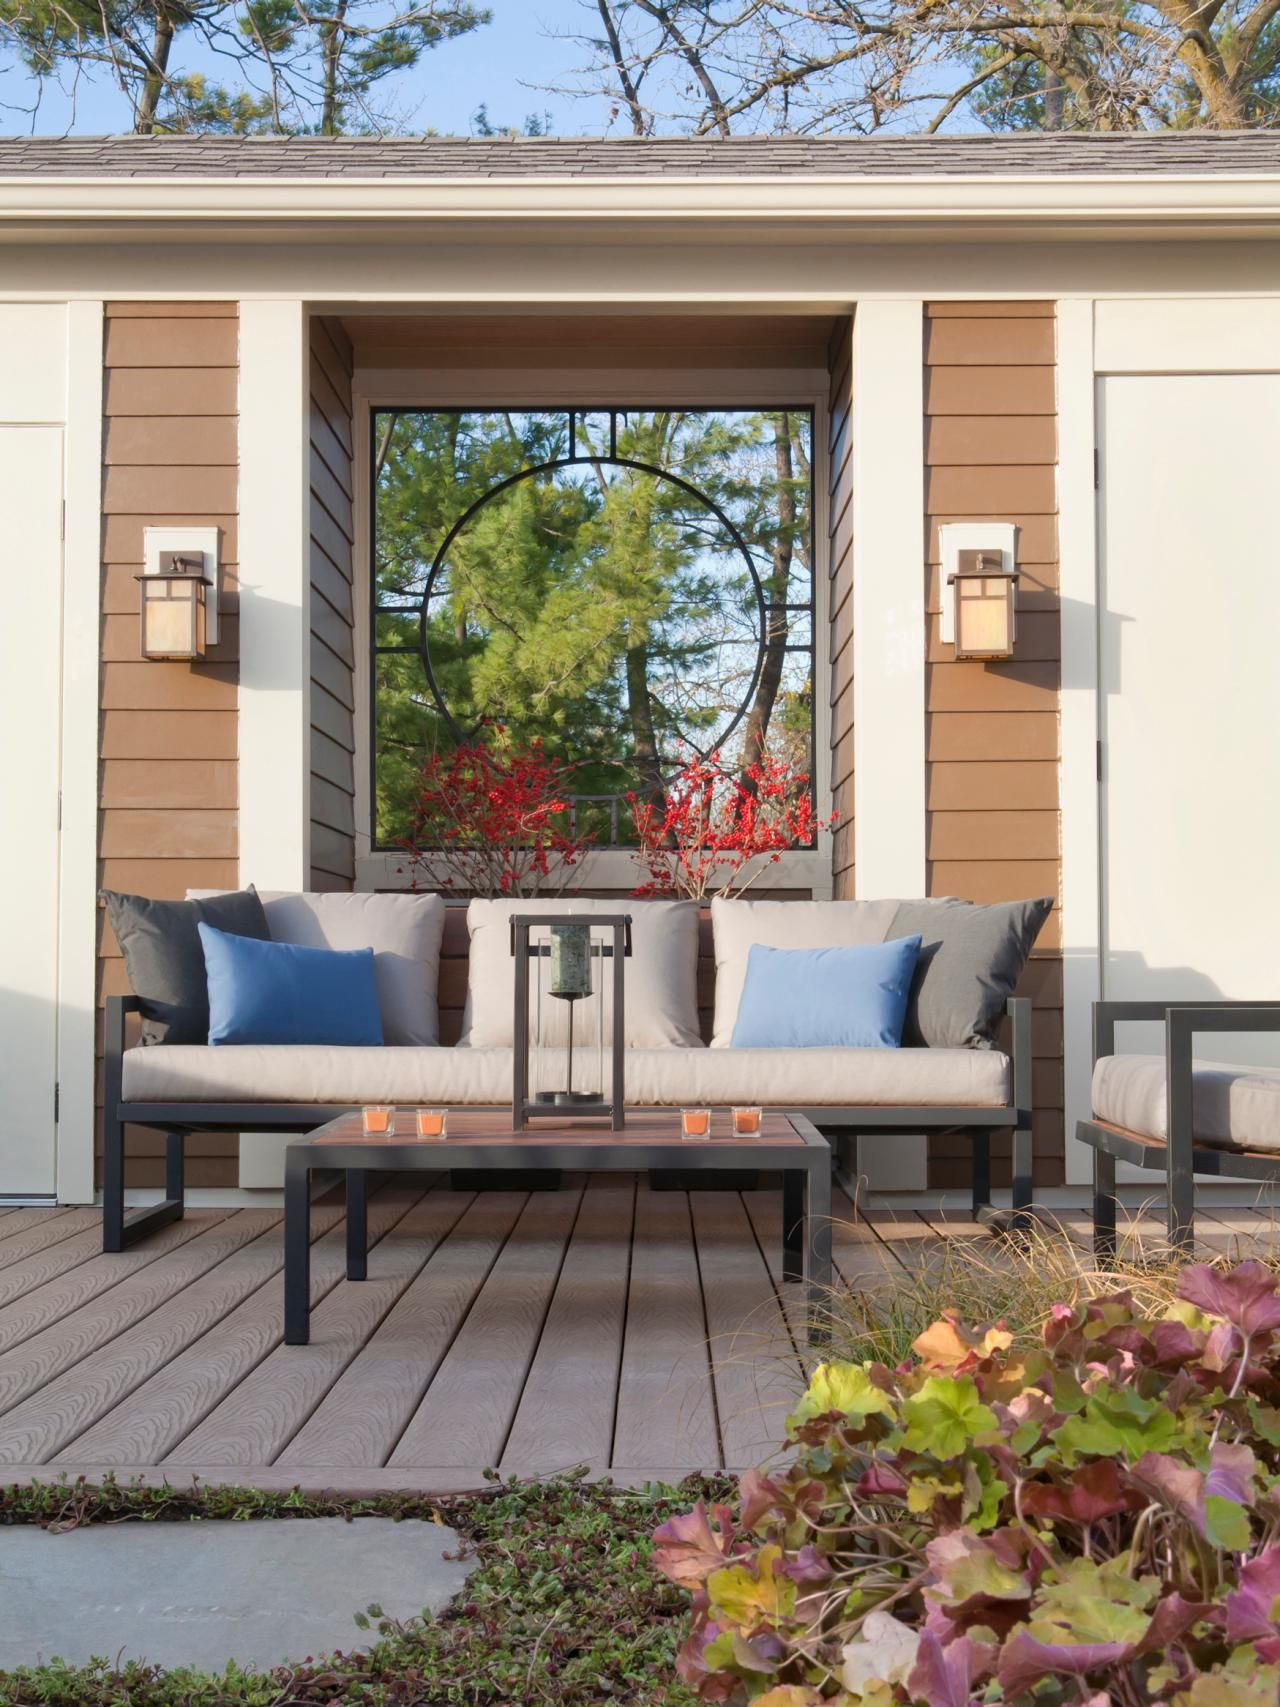 Home garden furniture  Sleek outdoor furniture creates a welcoming seating area on this